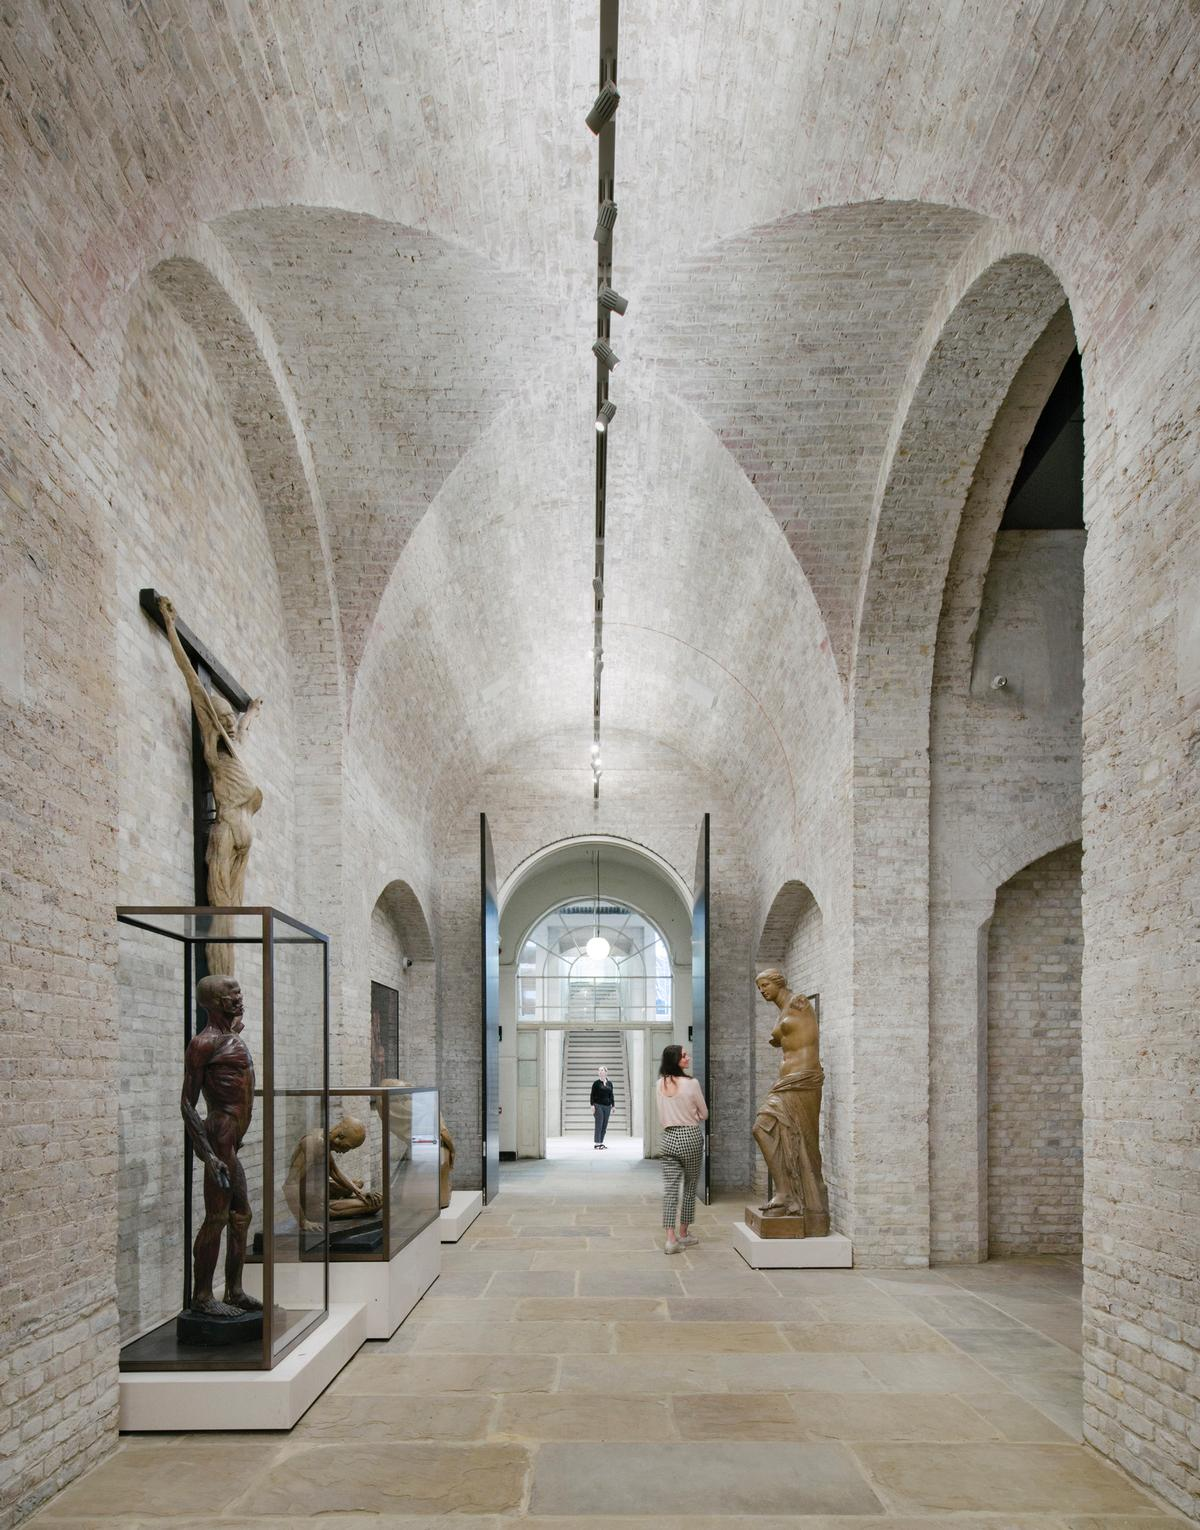 To celebrate its 250th anniversary year, the RA – one of the world's oldest and foremost artist and architect-led institutions – commissioned the renovation of its historic central London home / Simon Menges